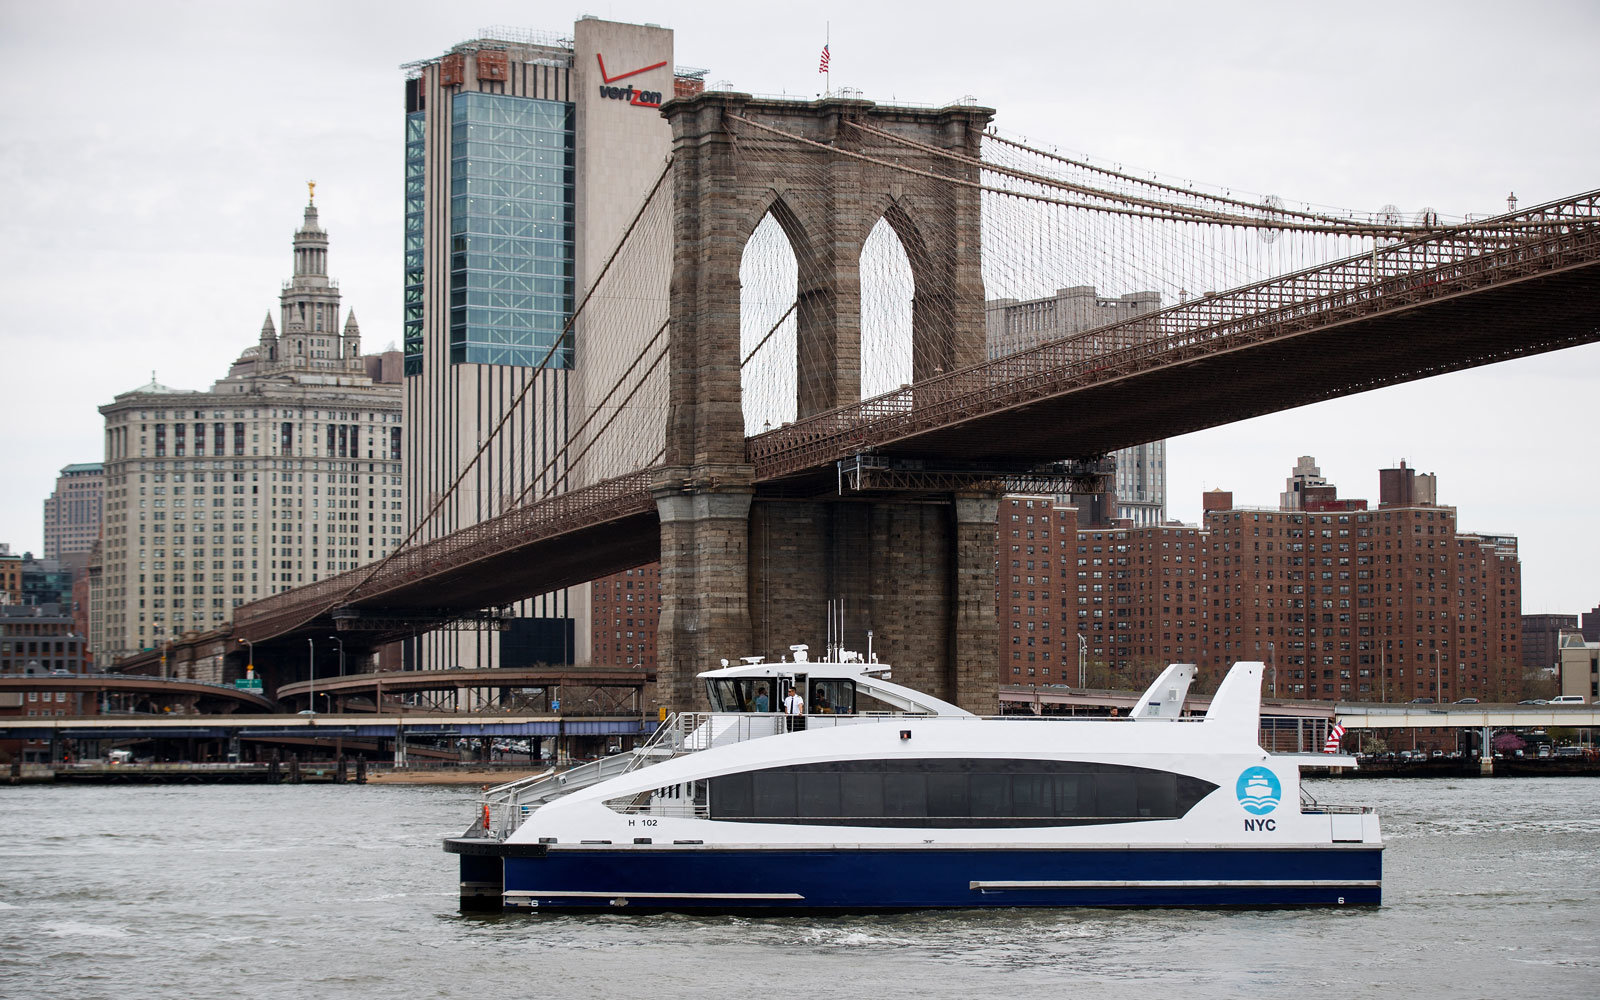 New York City Just Launched A New Ferry Service Connecting